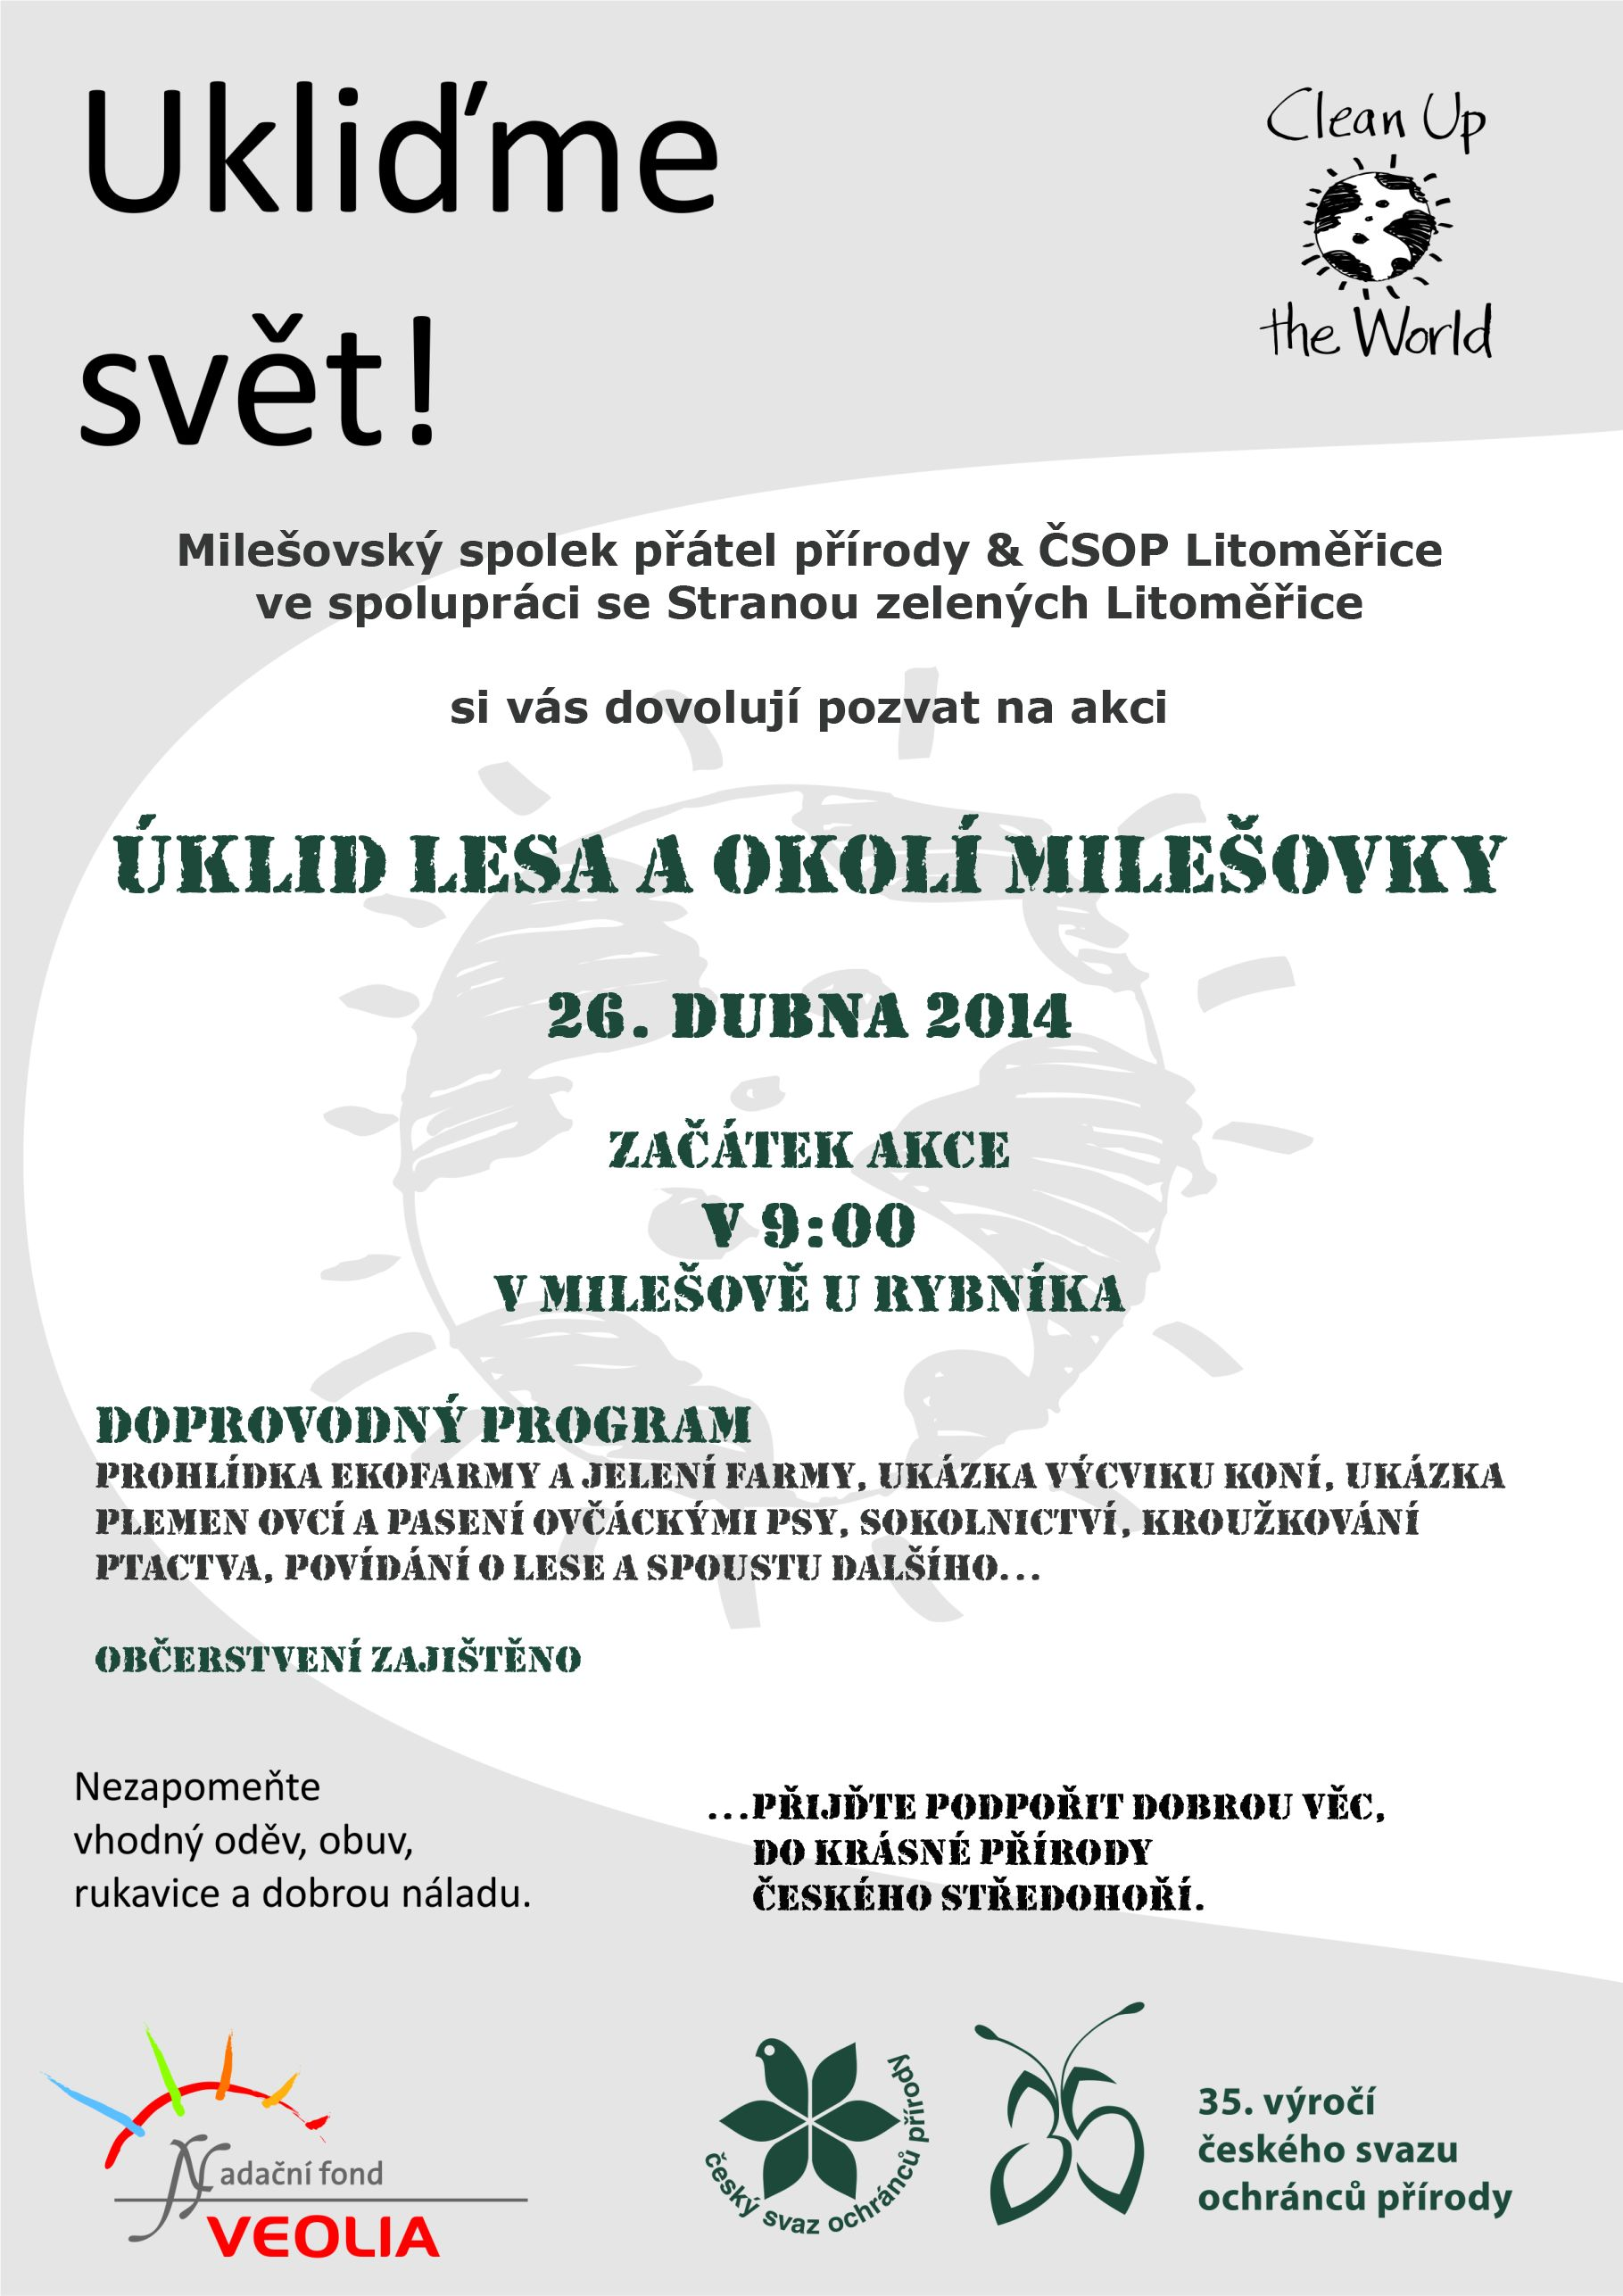 plakat_clean_up_Milešovka_2014 ver2.jpg